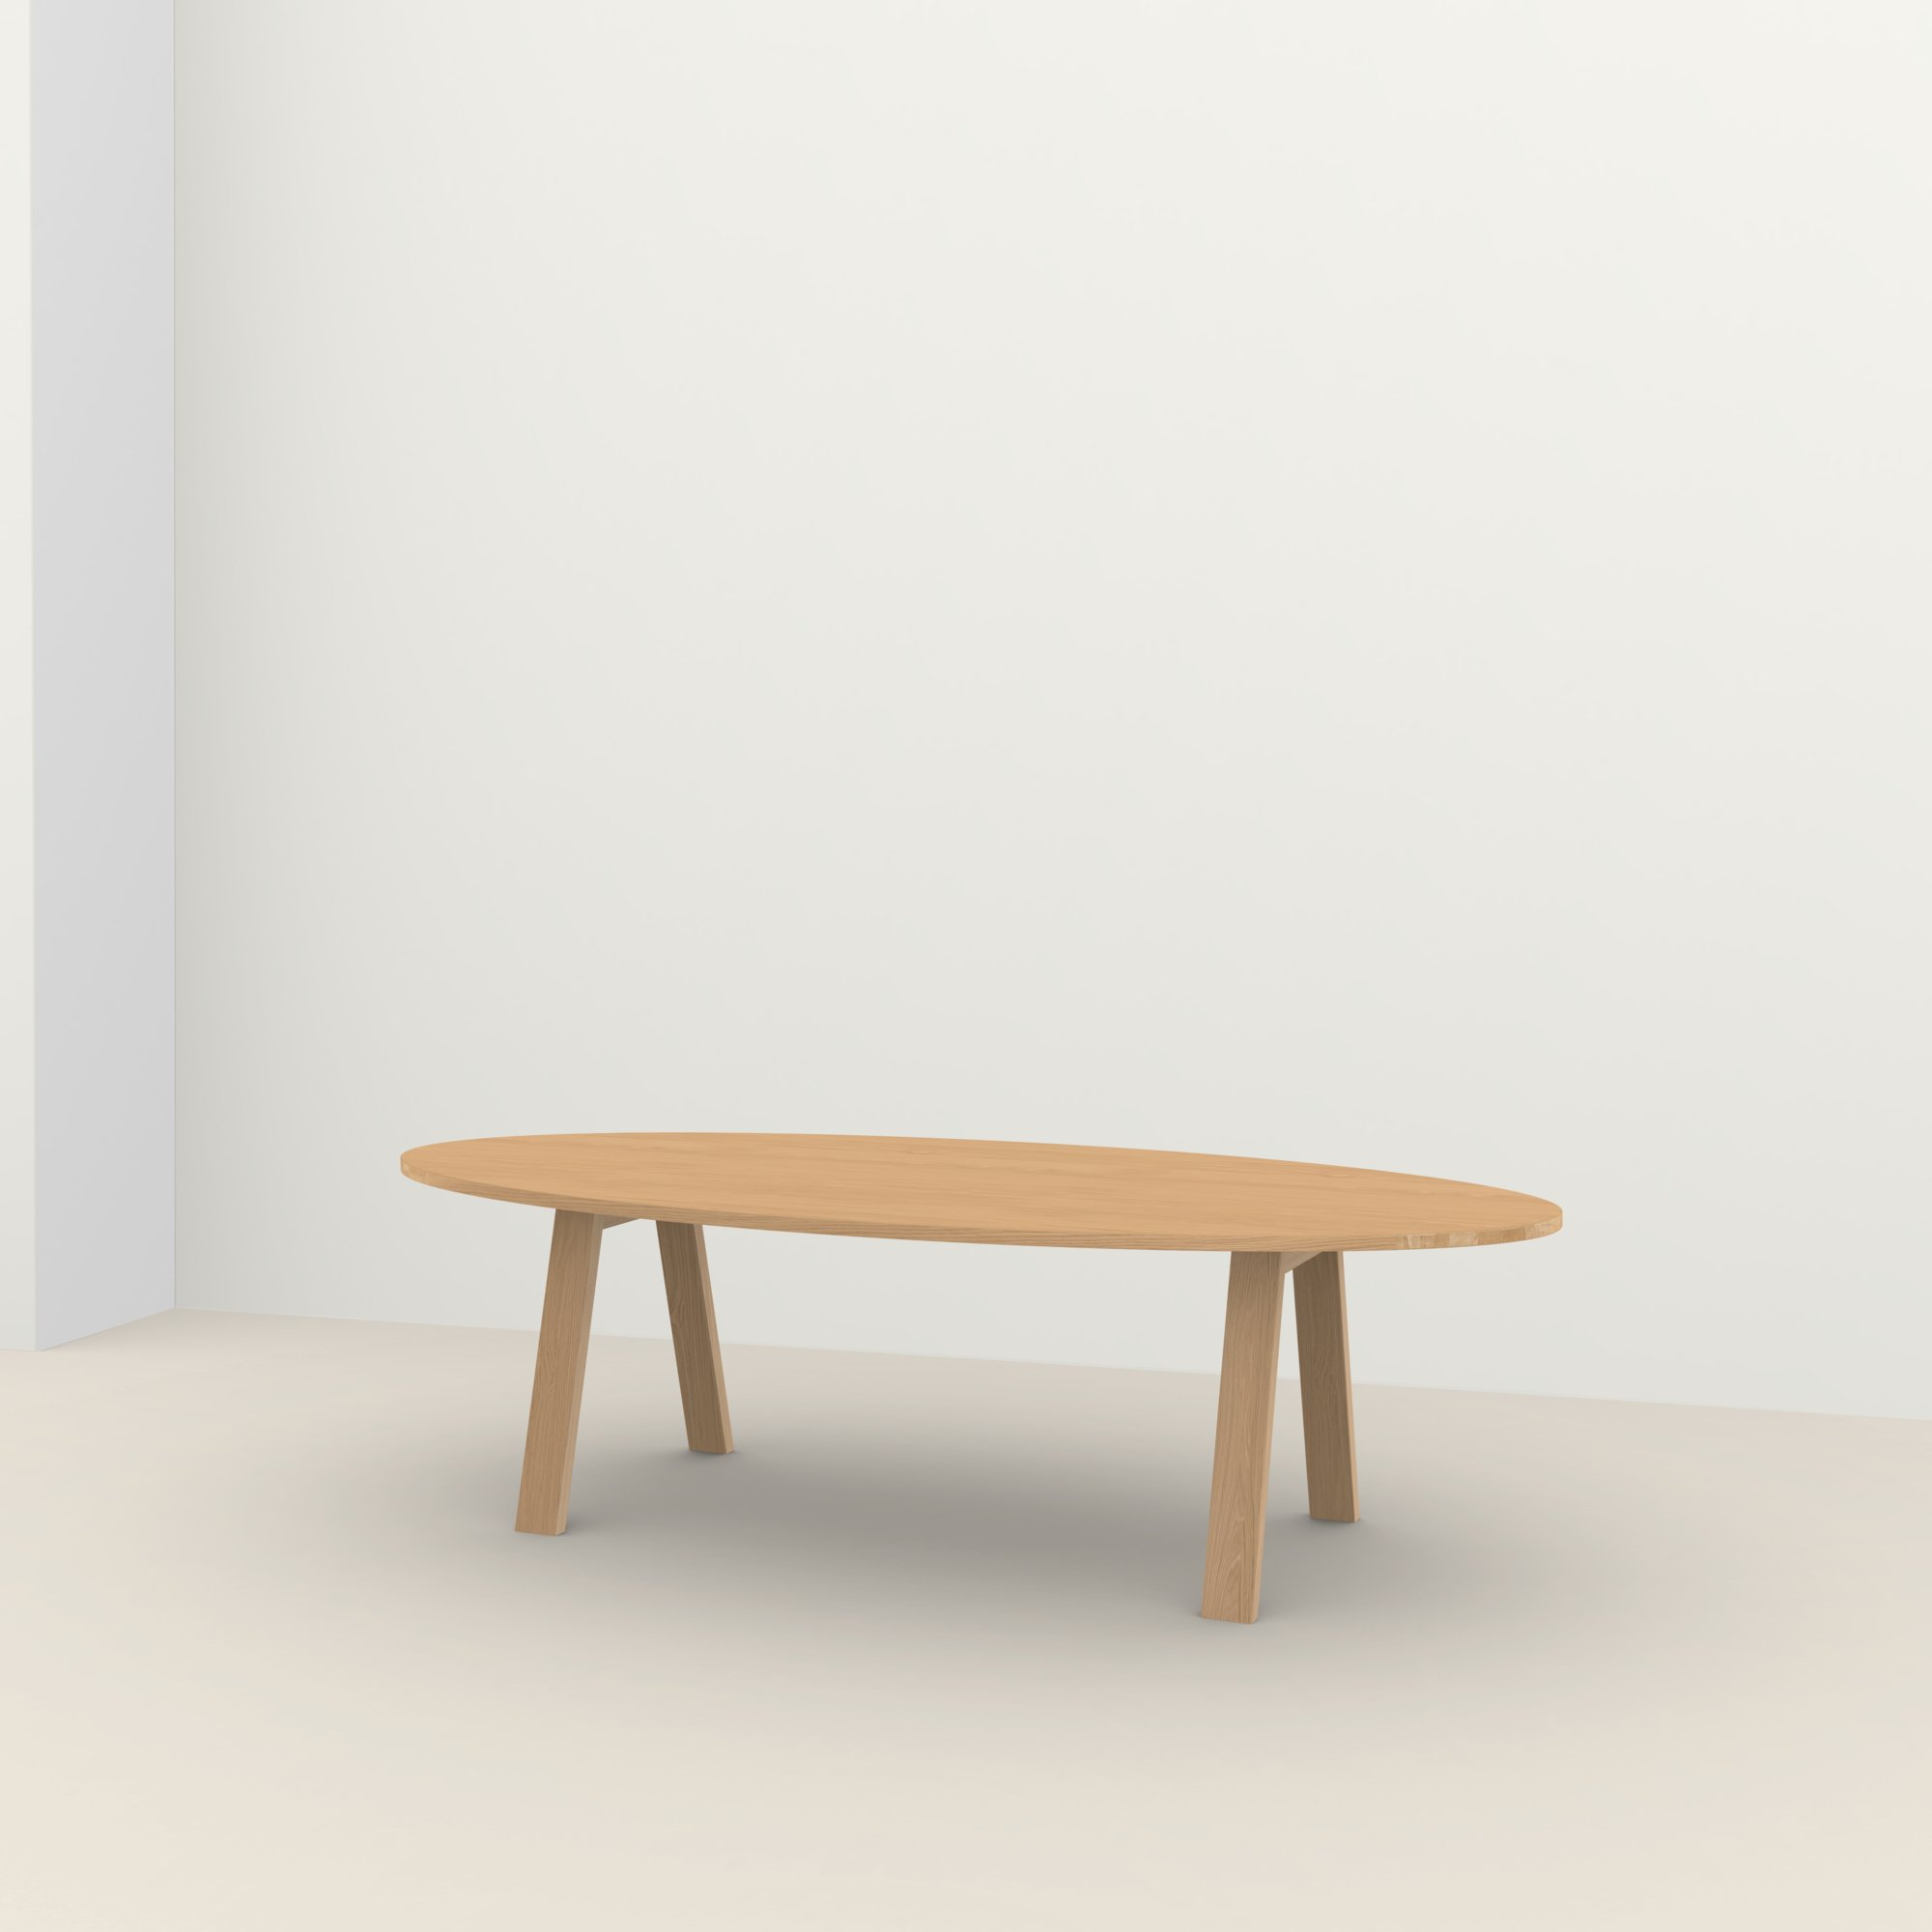 Ovale design tafel op maat | Legno Oak hardwax oil natural light 3041 | Oak hardwax oil natural light 3041 | Studio HENK |